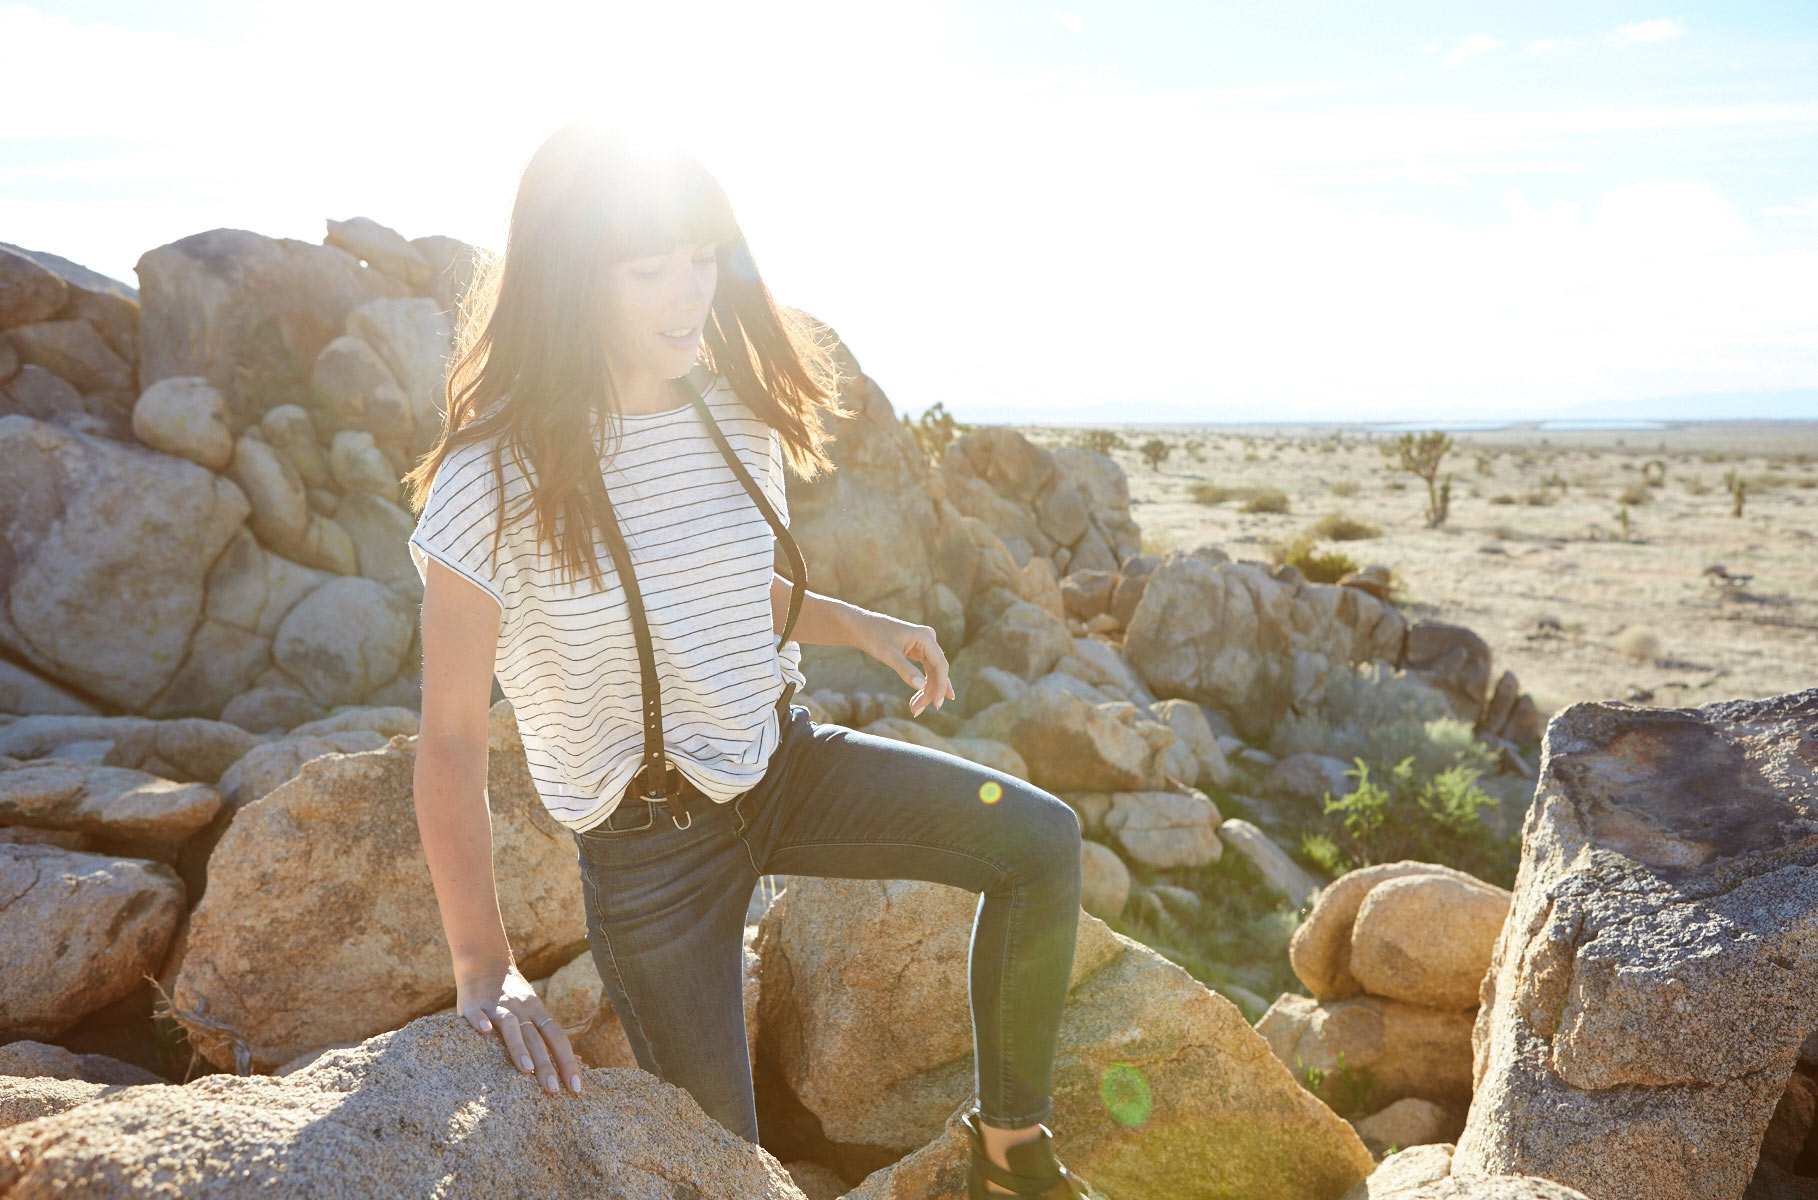 Desert_Lifestyle_Fashion_Photographer_Apparel_Denim_Jean_Levis_Photography_Mike_Henry_LA2